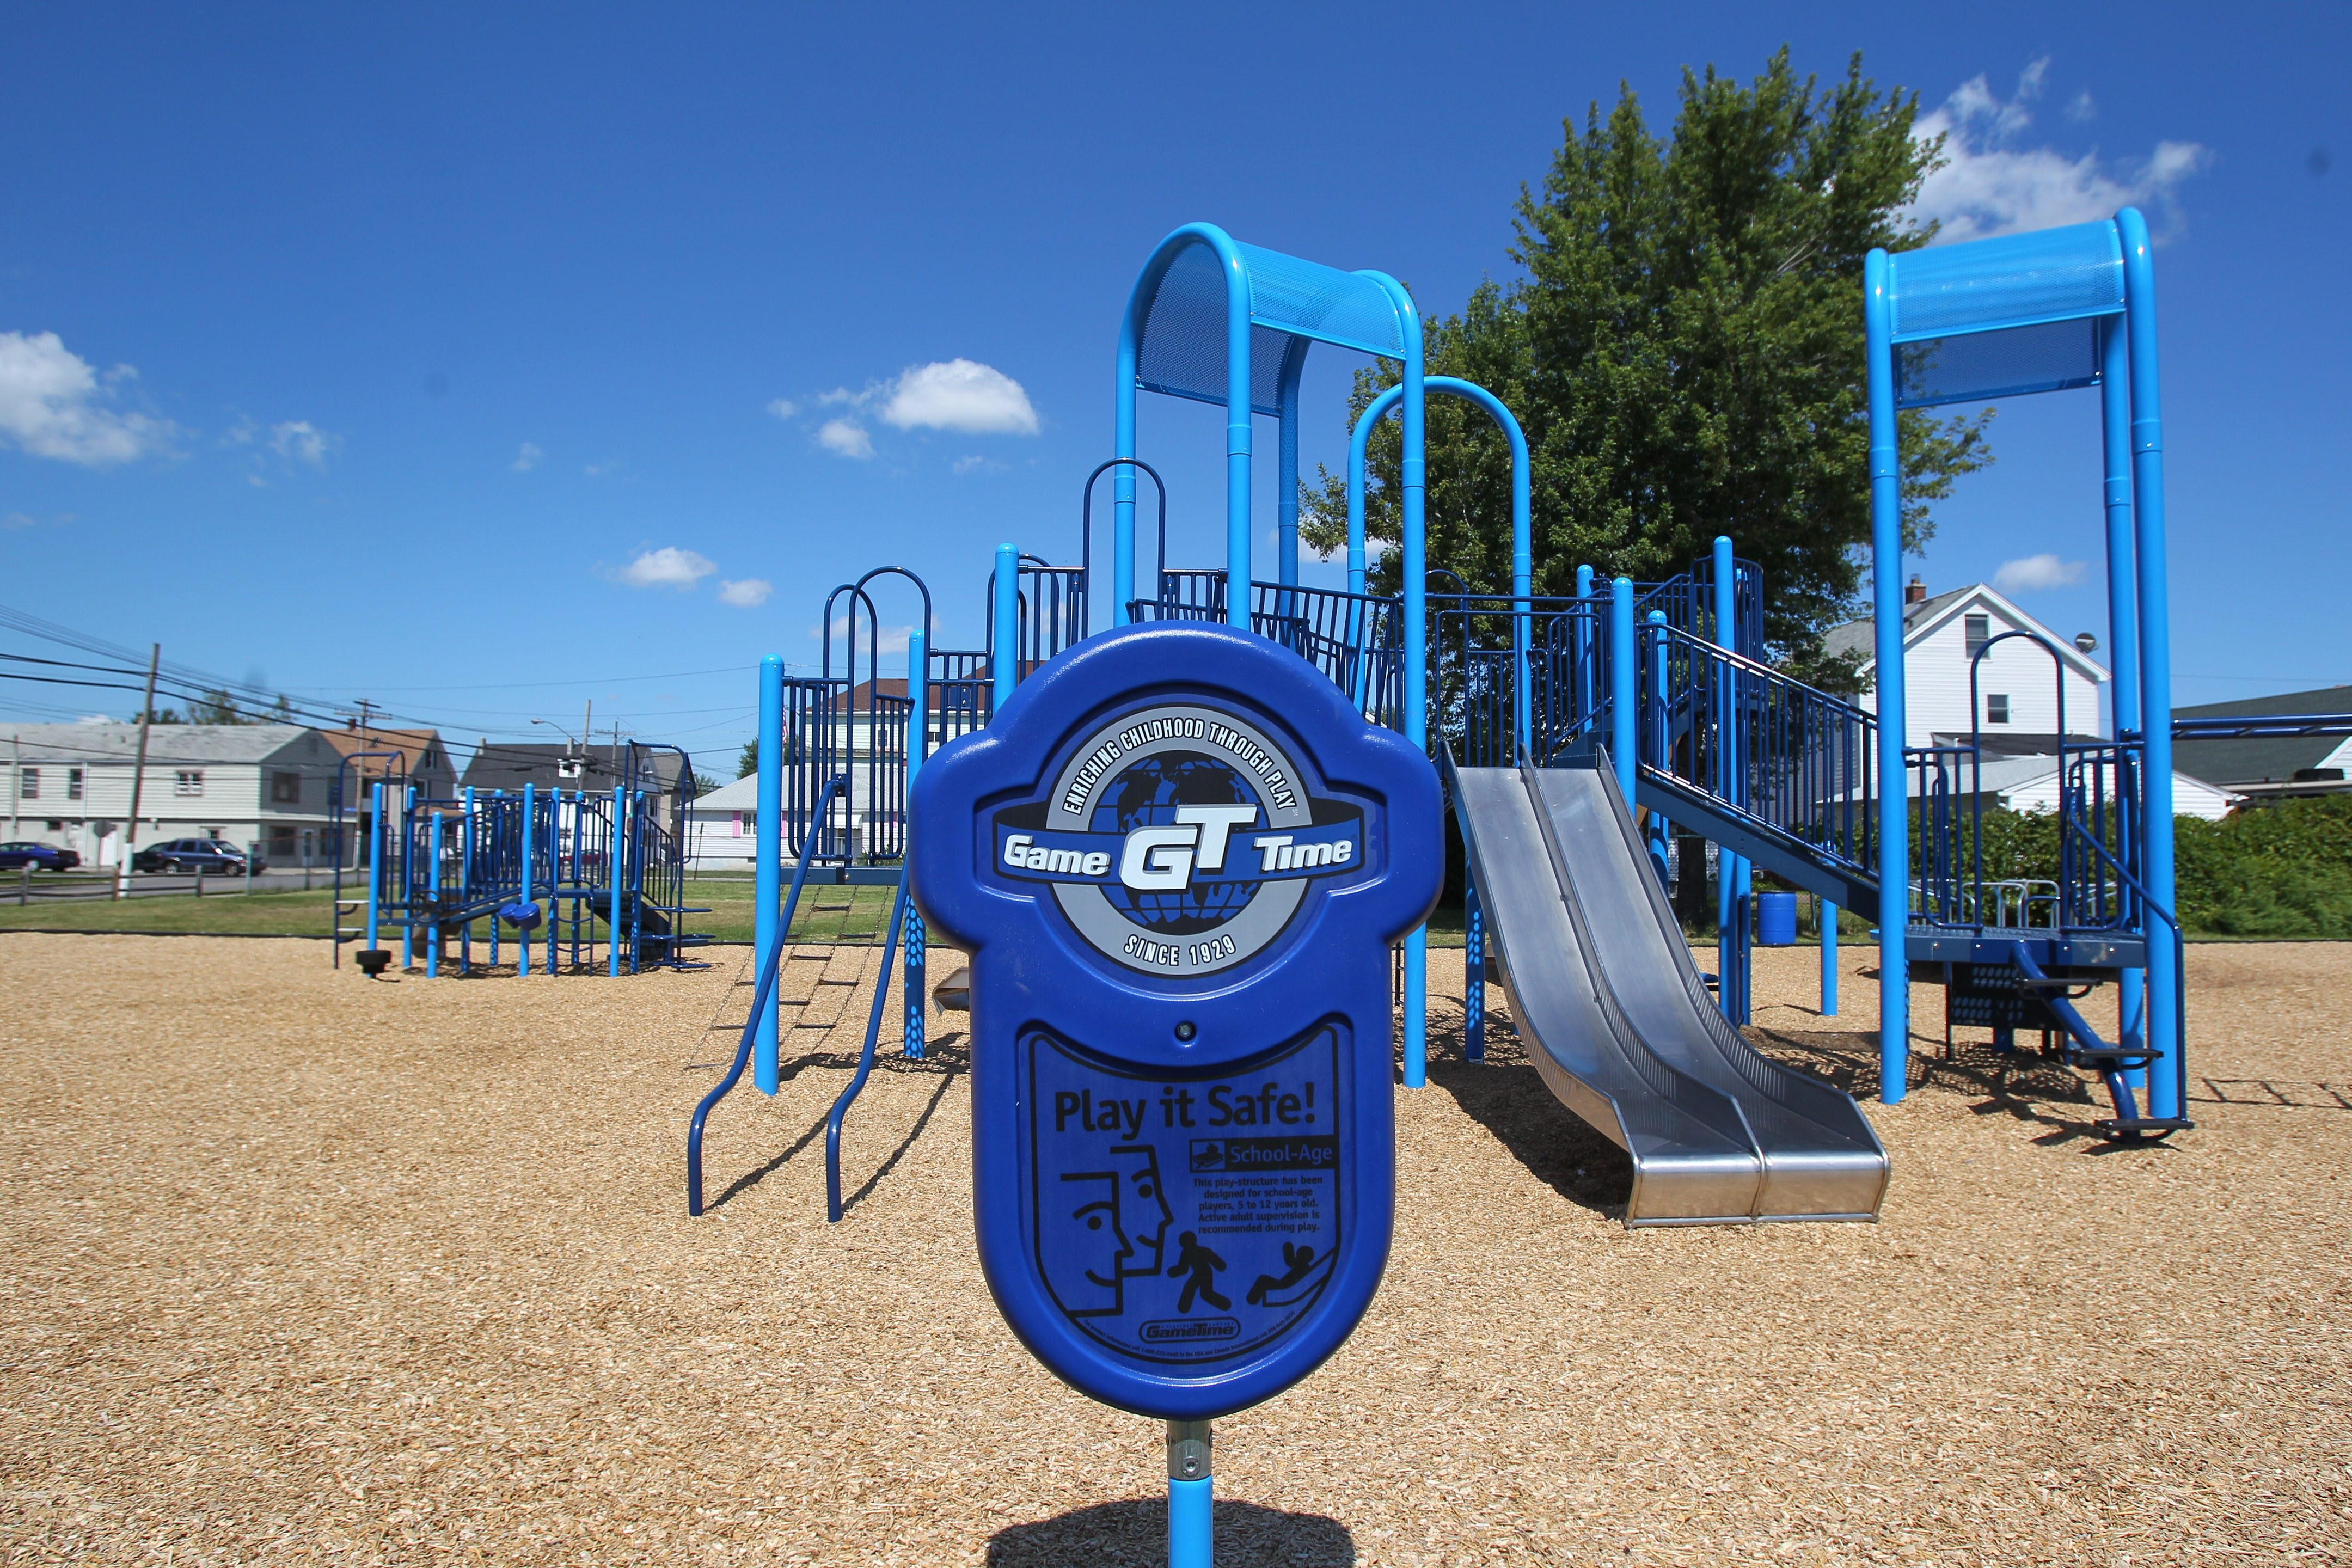 The playground at the corner of Electric and Cleveland avenues in Lackawanna features new equipment in vibrant shades of blue from Game Time. A new merry-go-round at the playground is proving to be very popular with the city's children.